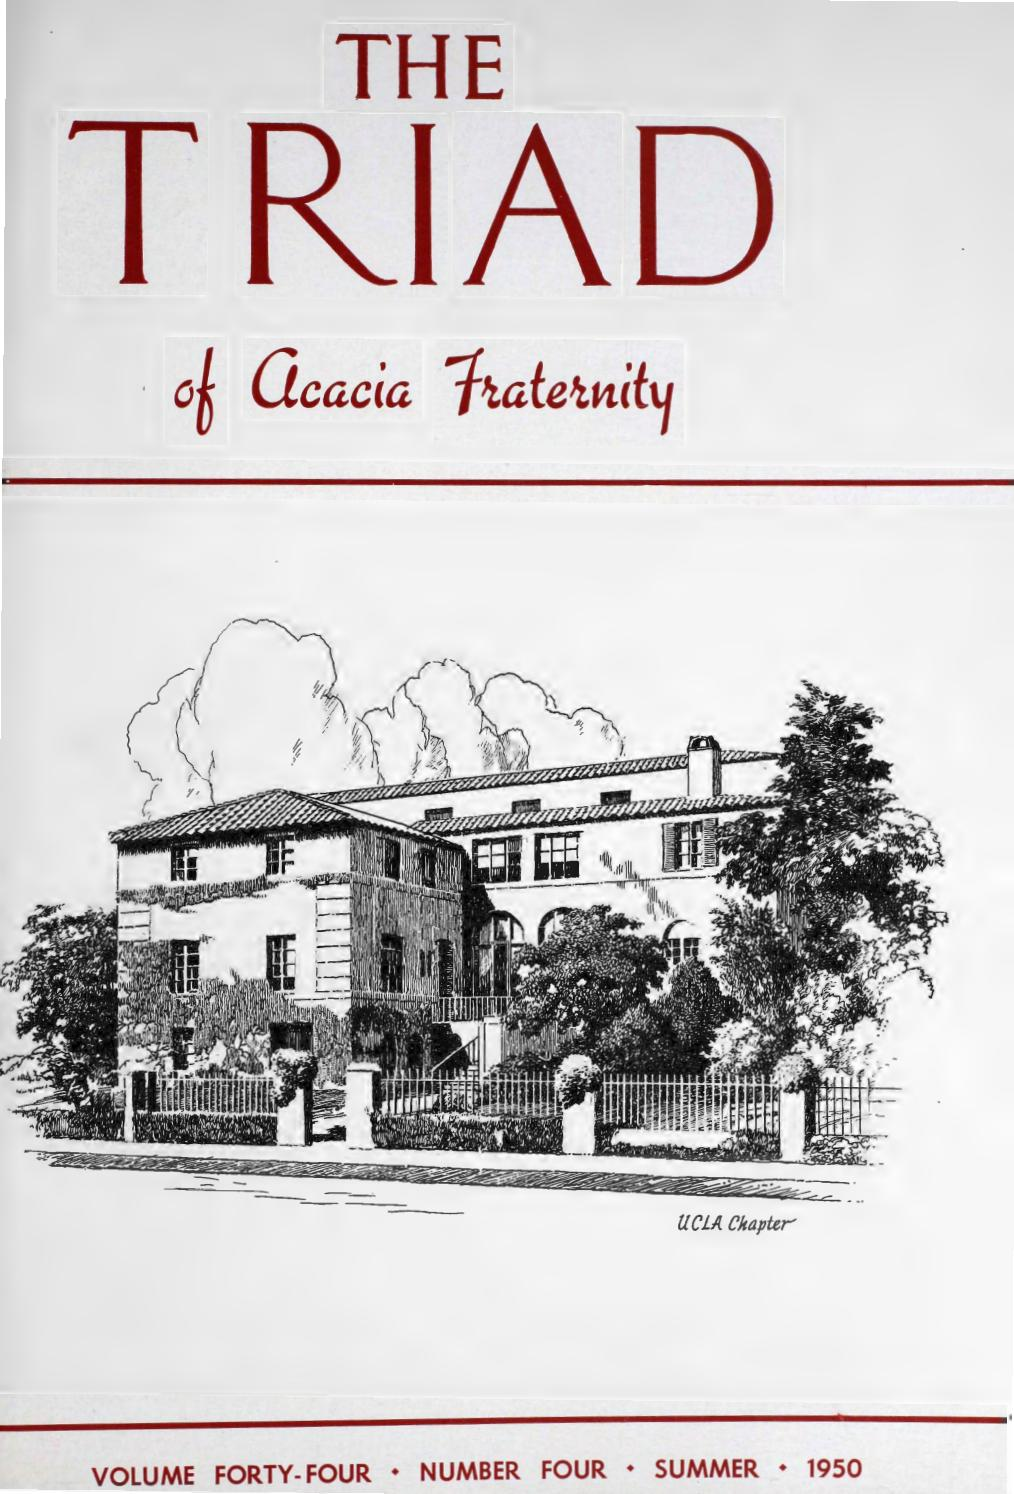 28643b02c3 Acacia triad vol 44 no 4 summer 1950 by Acacia Fraternity - issuu